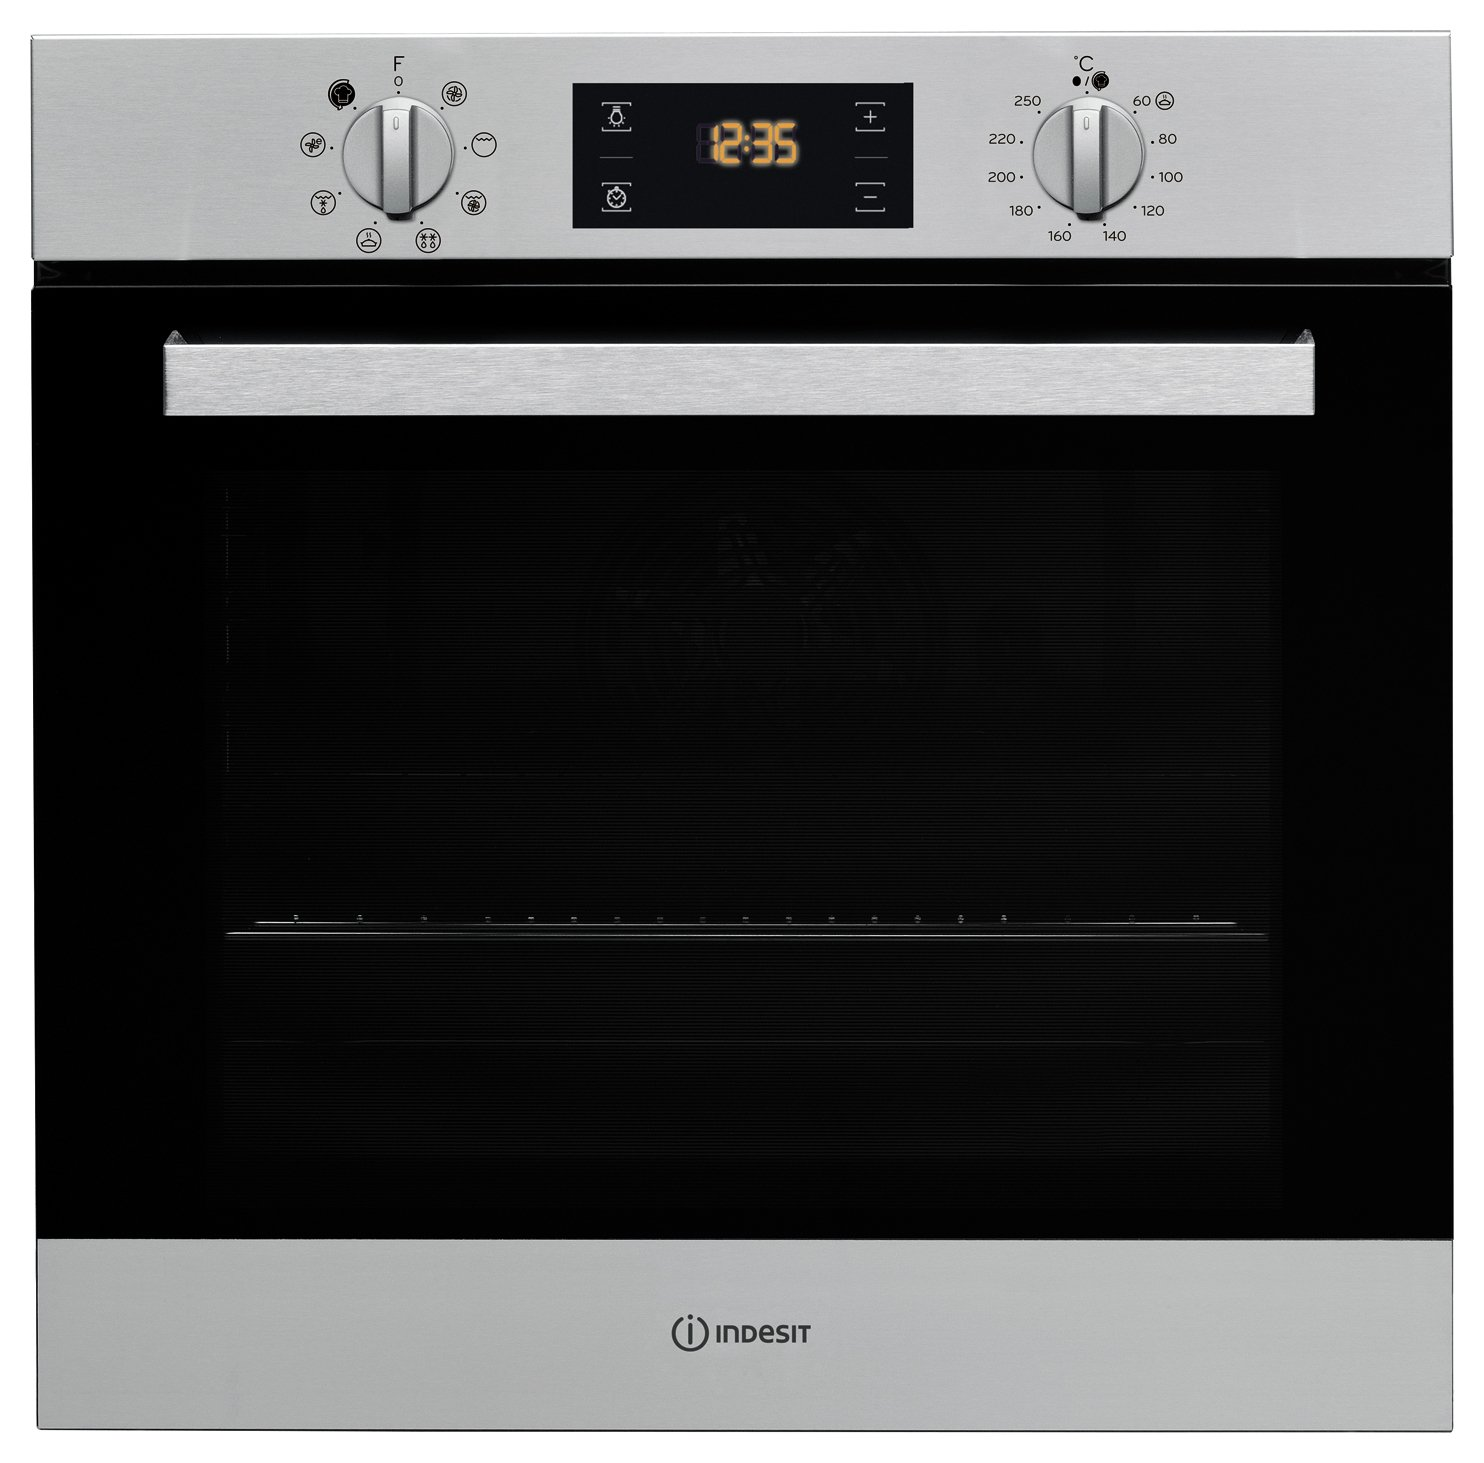 Indesit Aria IFW6340IX Built-in Electric Oven - Steel + Installation from Indesit